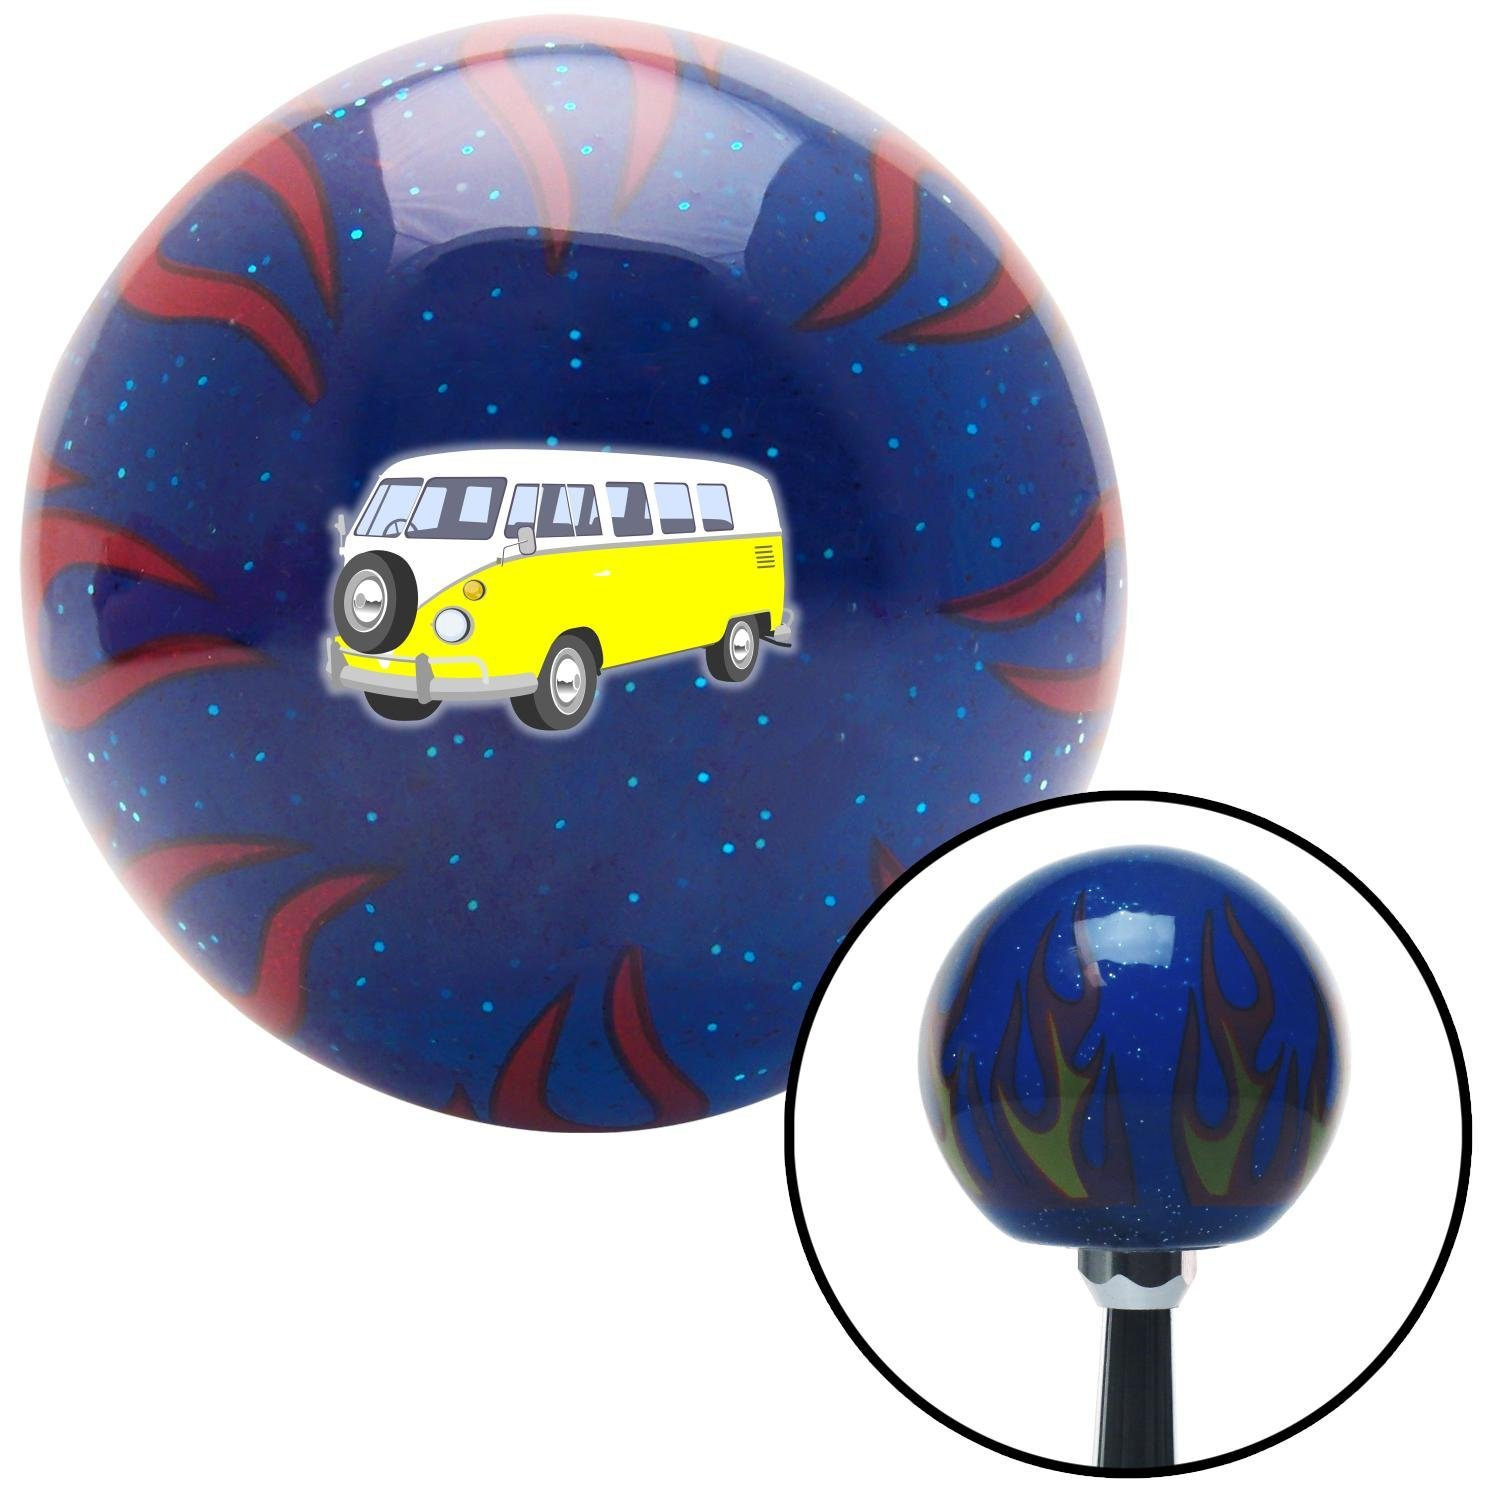 Yellow Camper American Shifter 251883 Blue Flame Metal Flake Shift Knob with M16 x 1.5 Insert